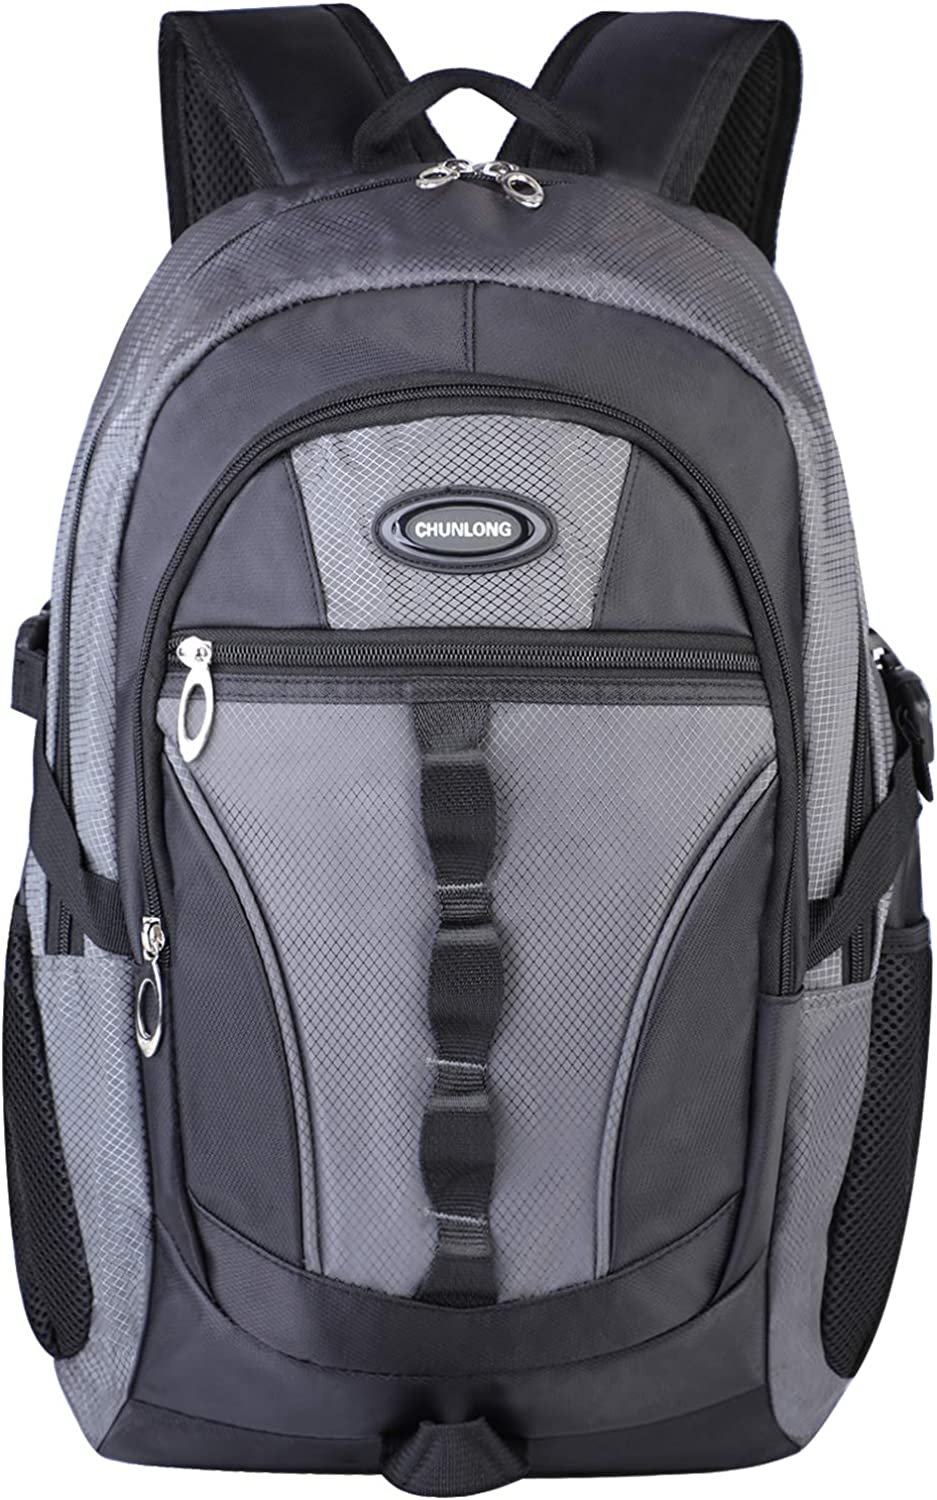 COOFIT Travel Laptop Backpack Laptop School Backpack Large Capacity Backpack for Men Hiking Backpack School Bags